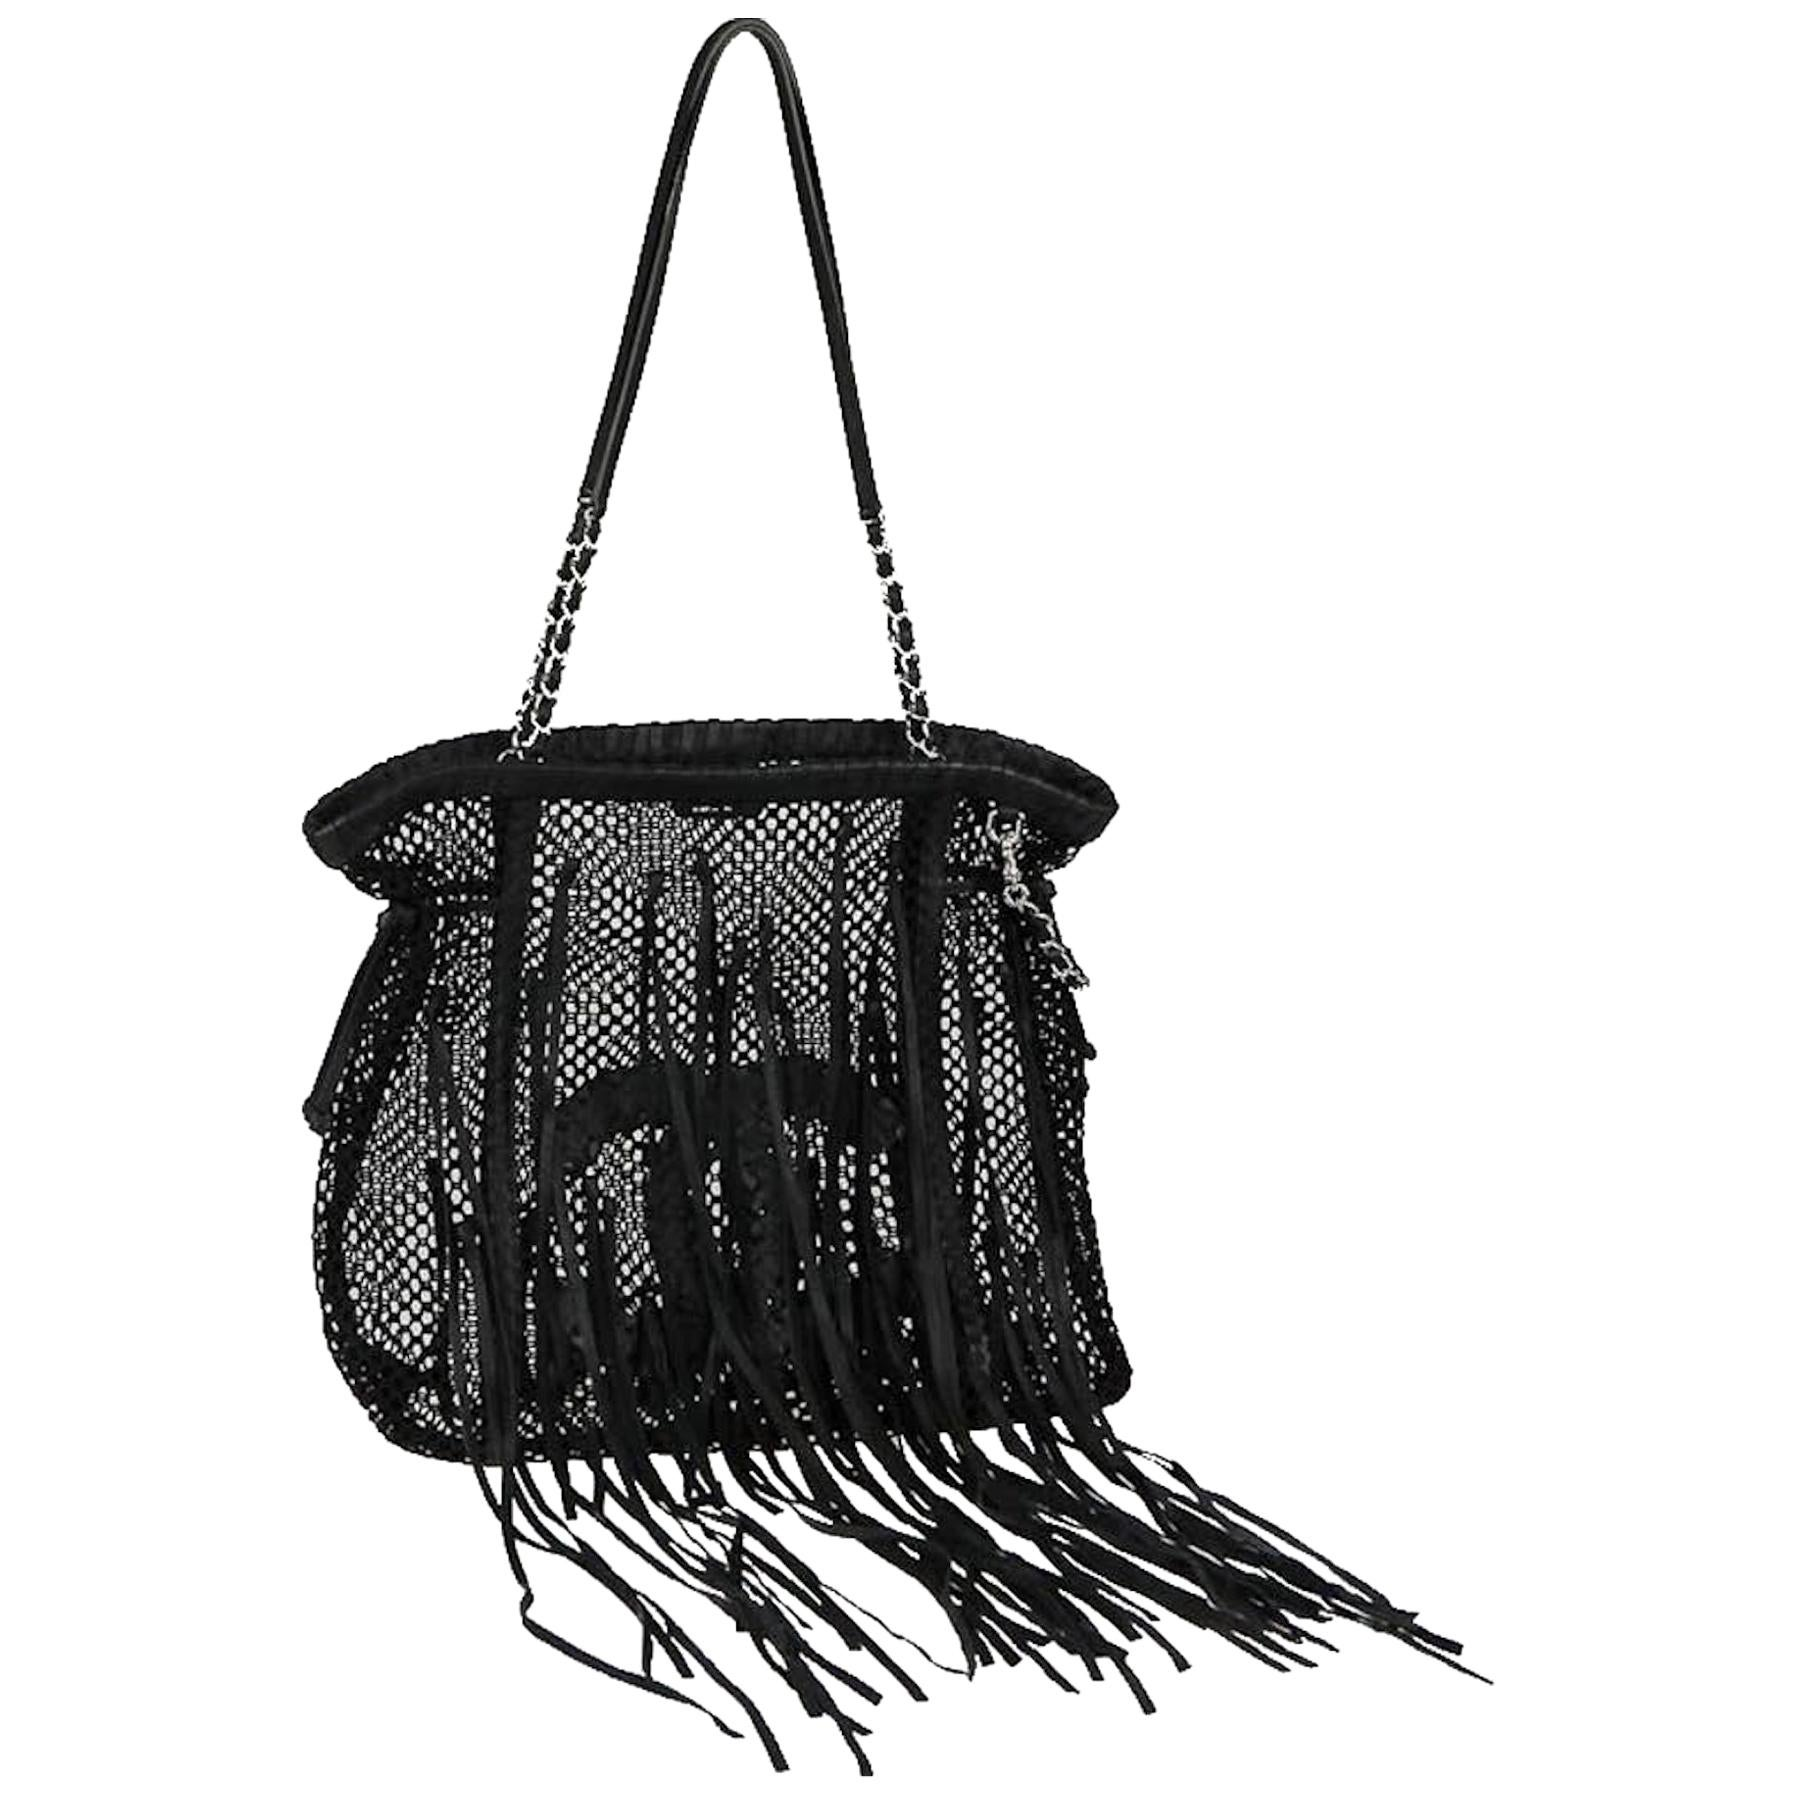 Chanel Limited Edition Resort Fringe Mesh Black Leather Large Tote Rare Soldout